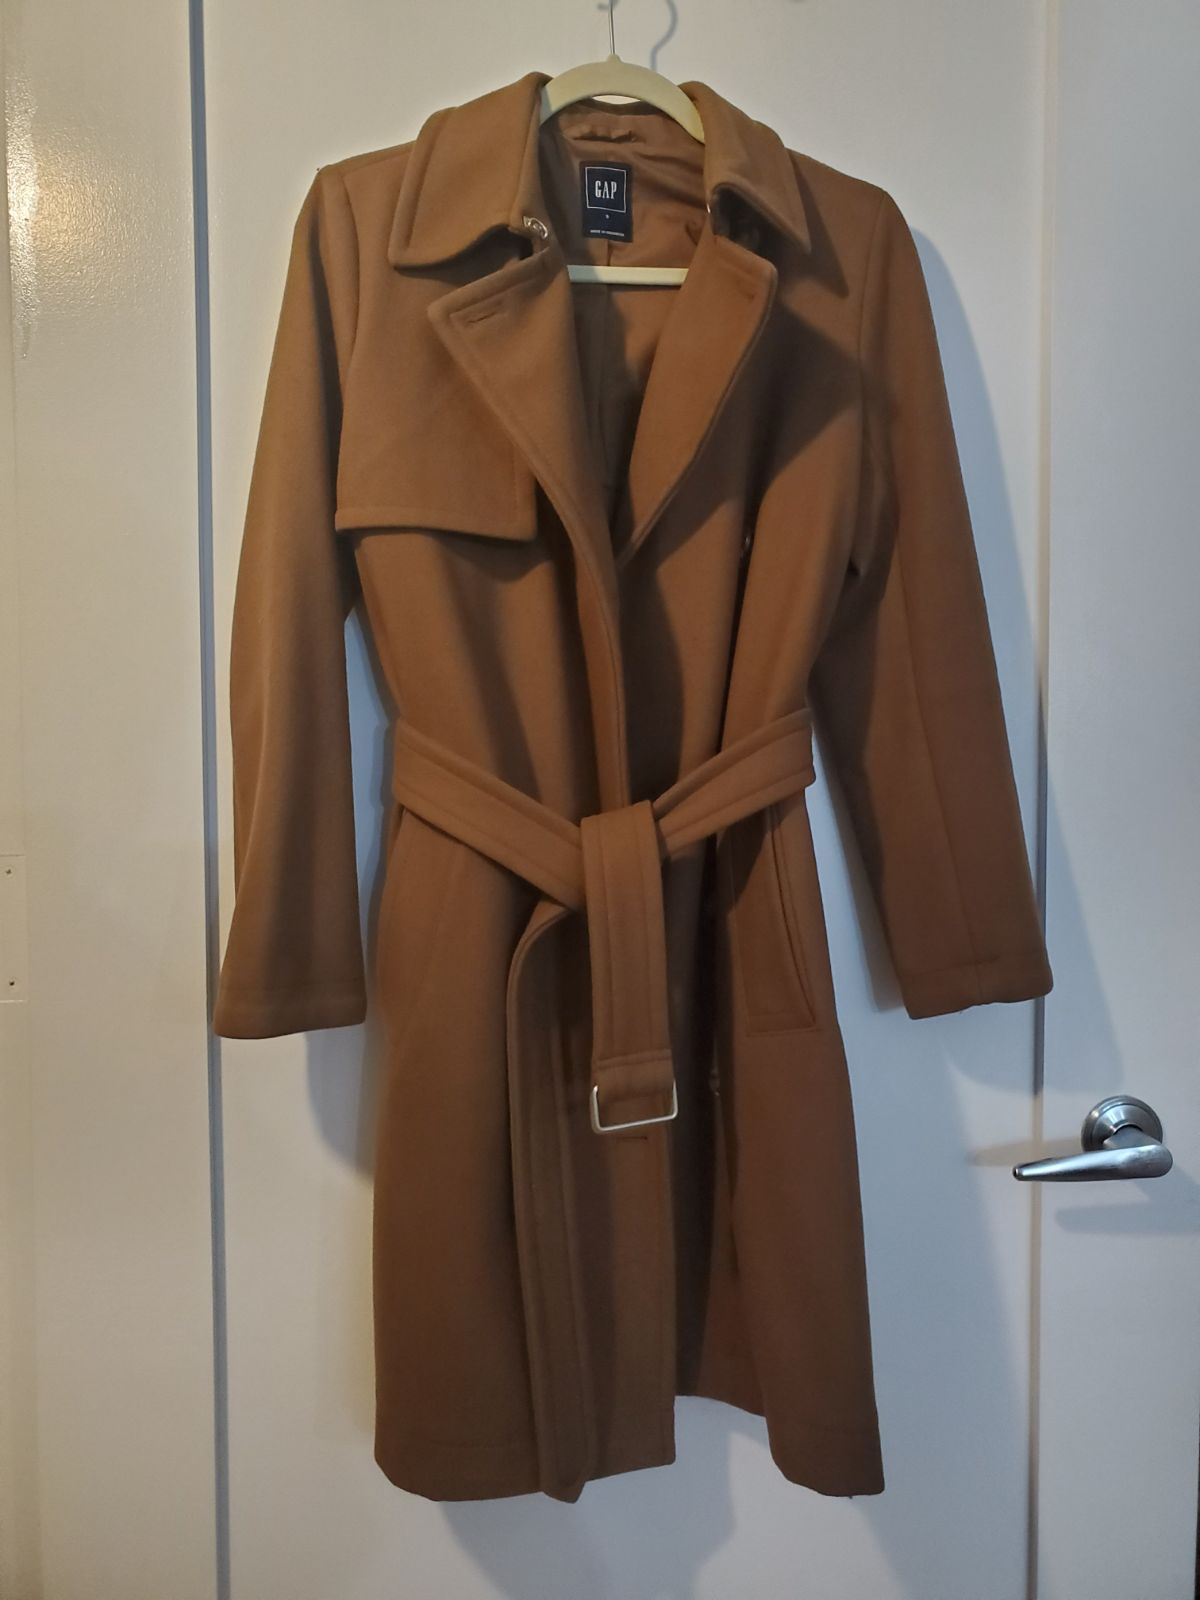 Gap Carmel Belted Trench Wool Coat by Gap